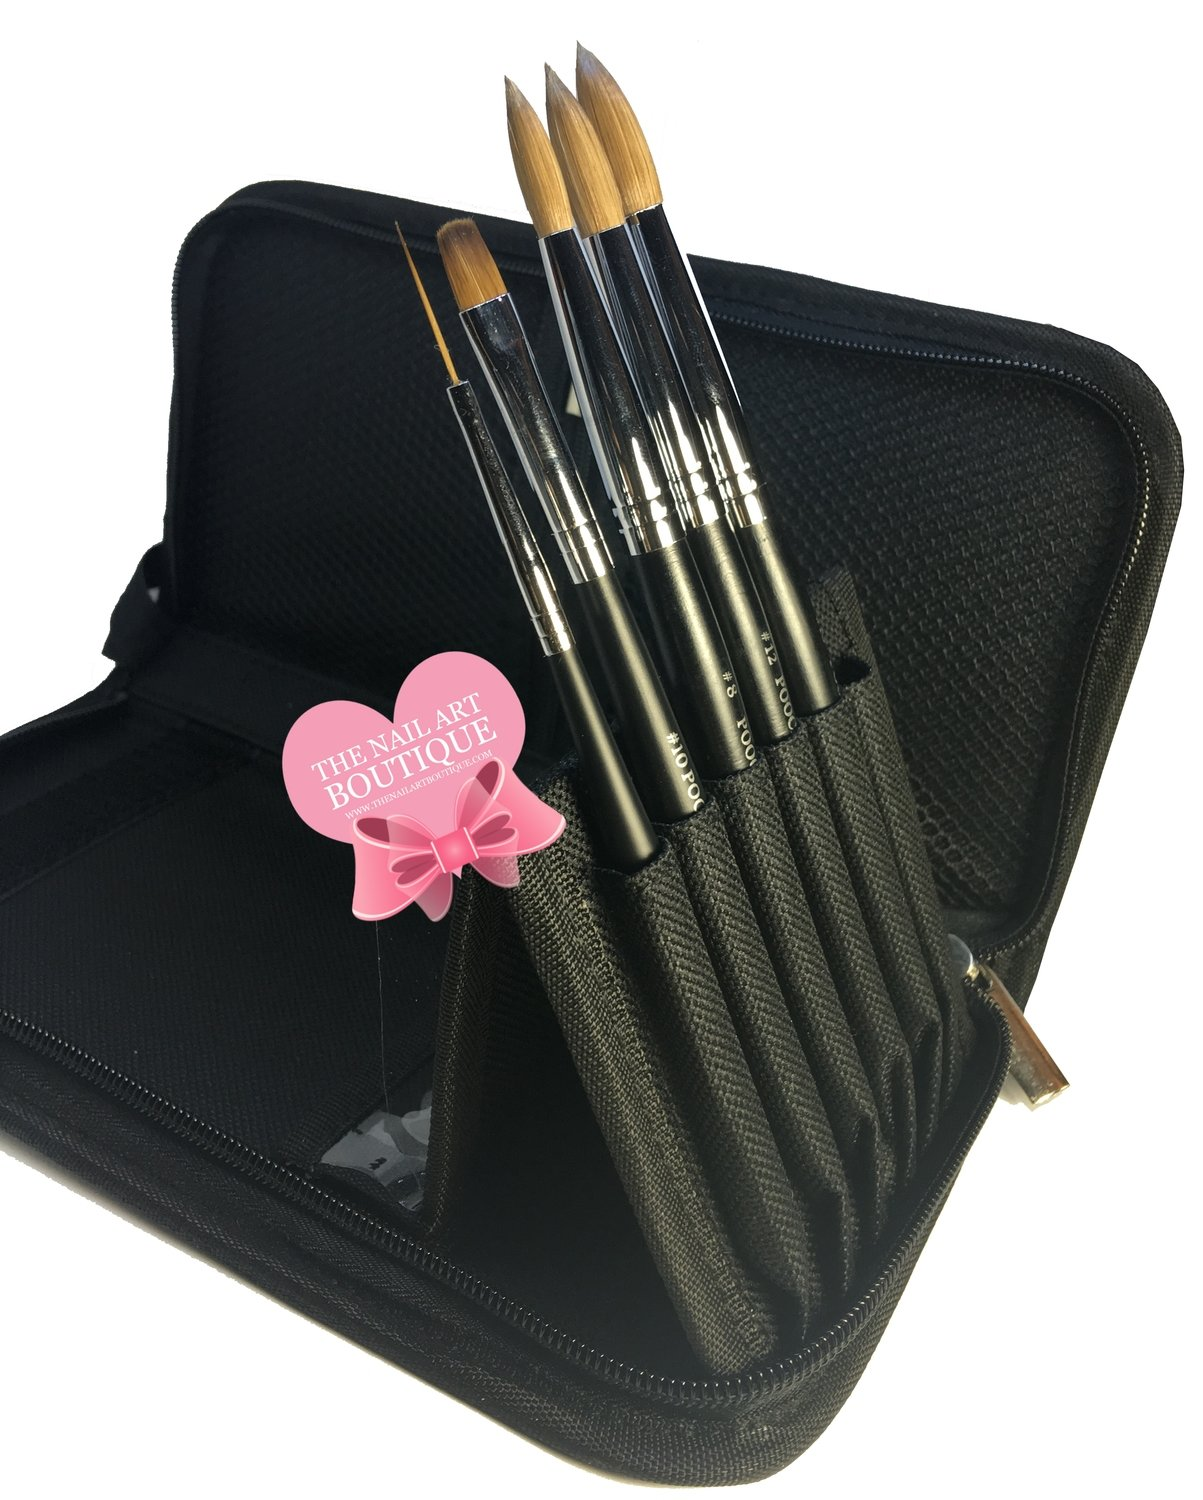 ITEM #37 POOCHIEZ NAILS BRUSH BAGS (BRUSHES ARE NOT INCLUDED)